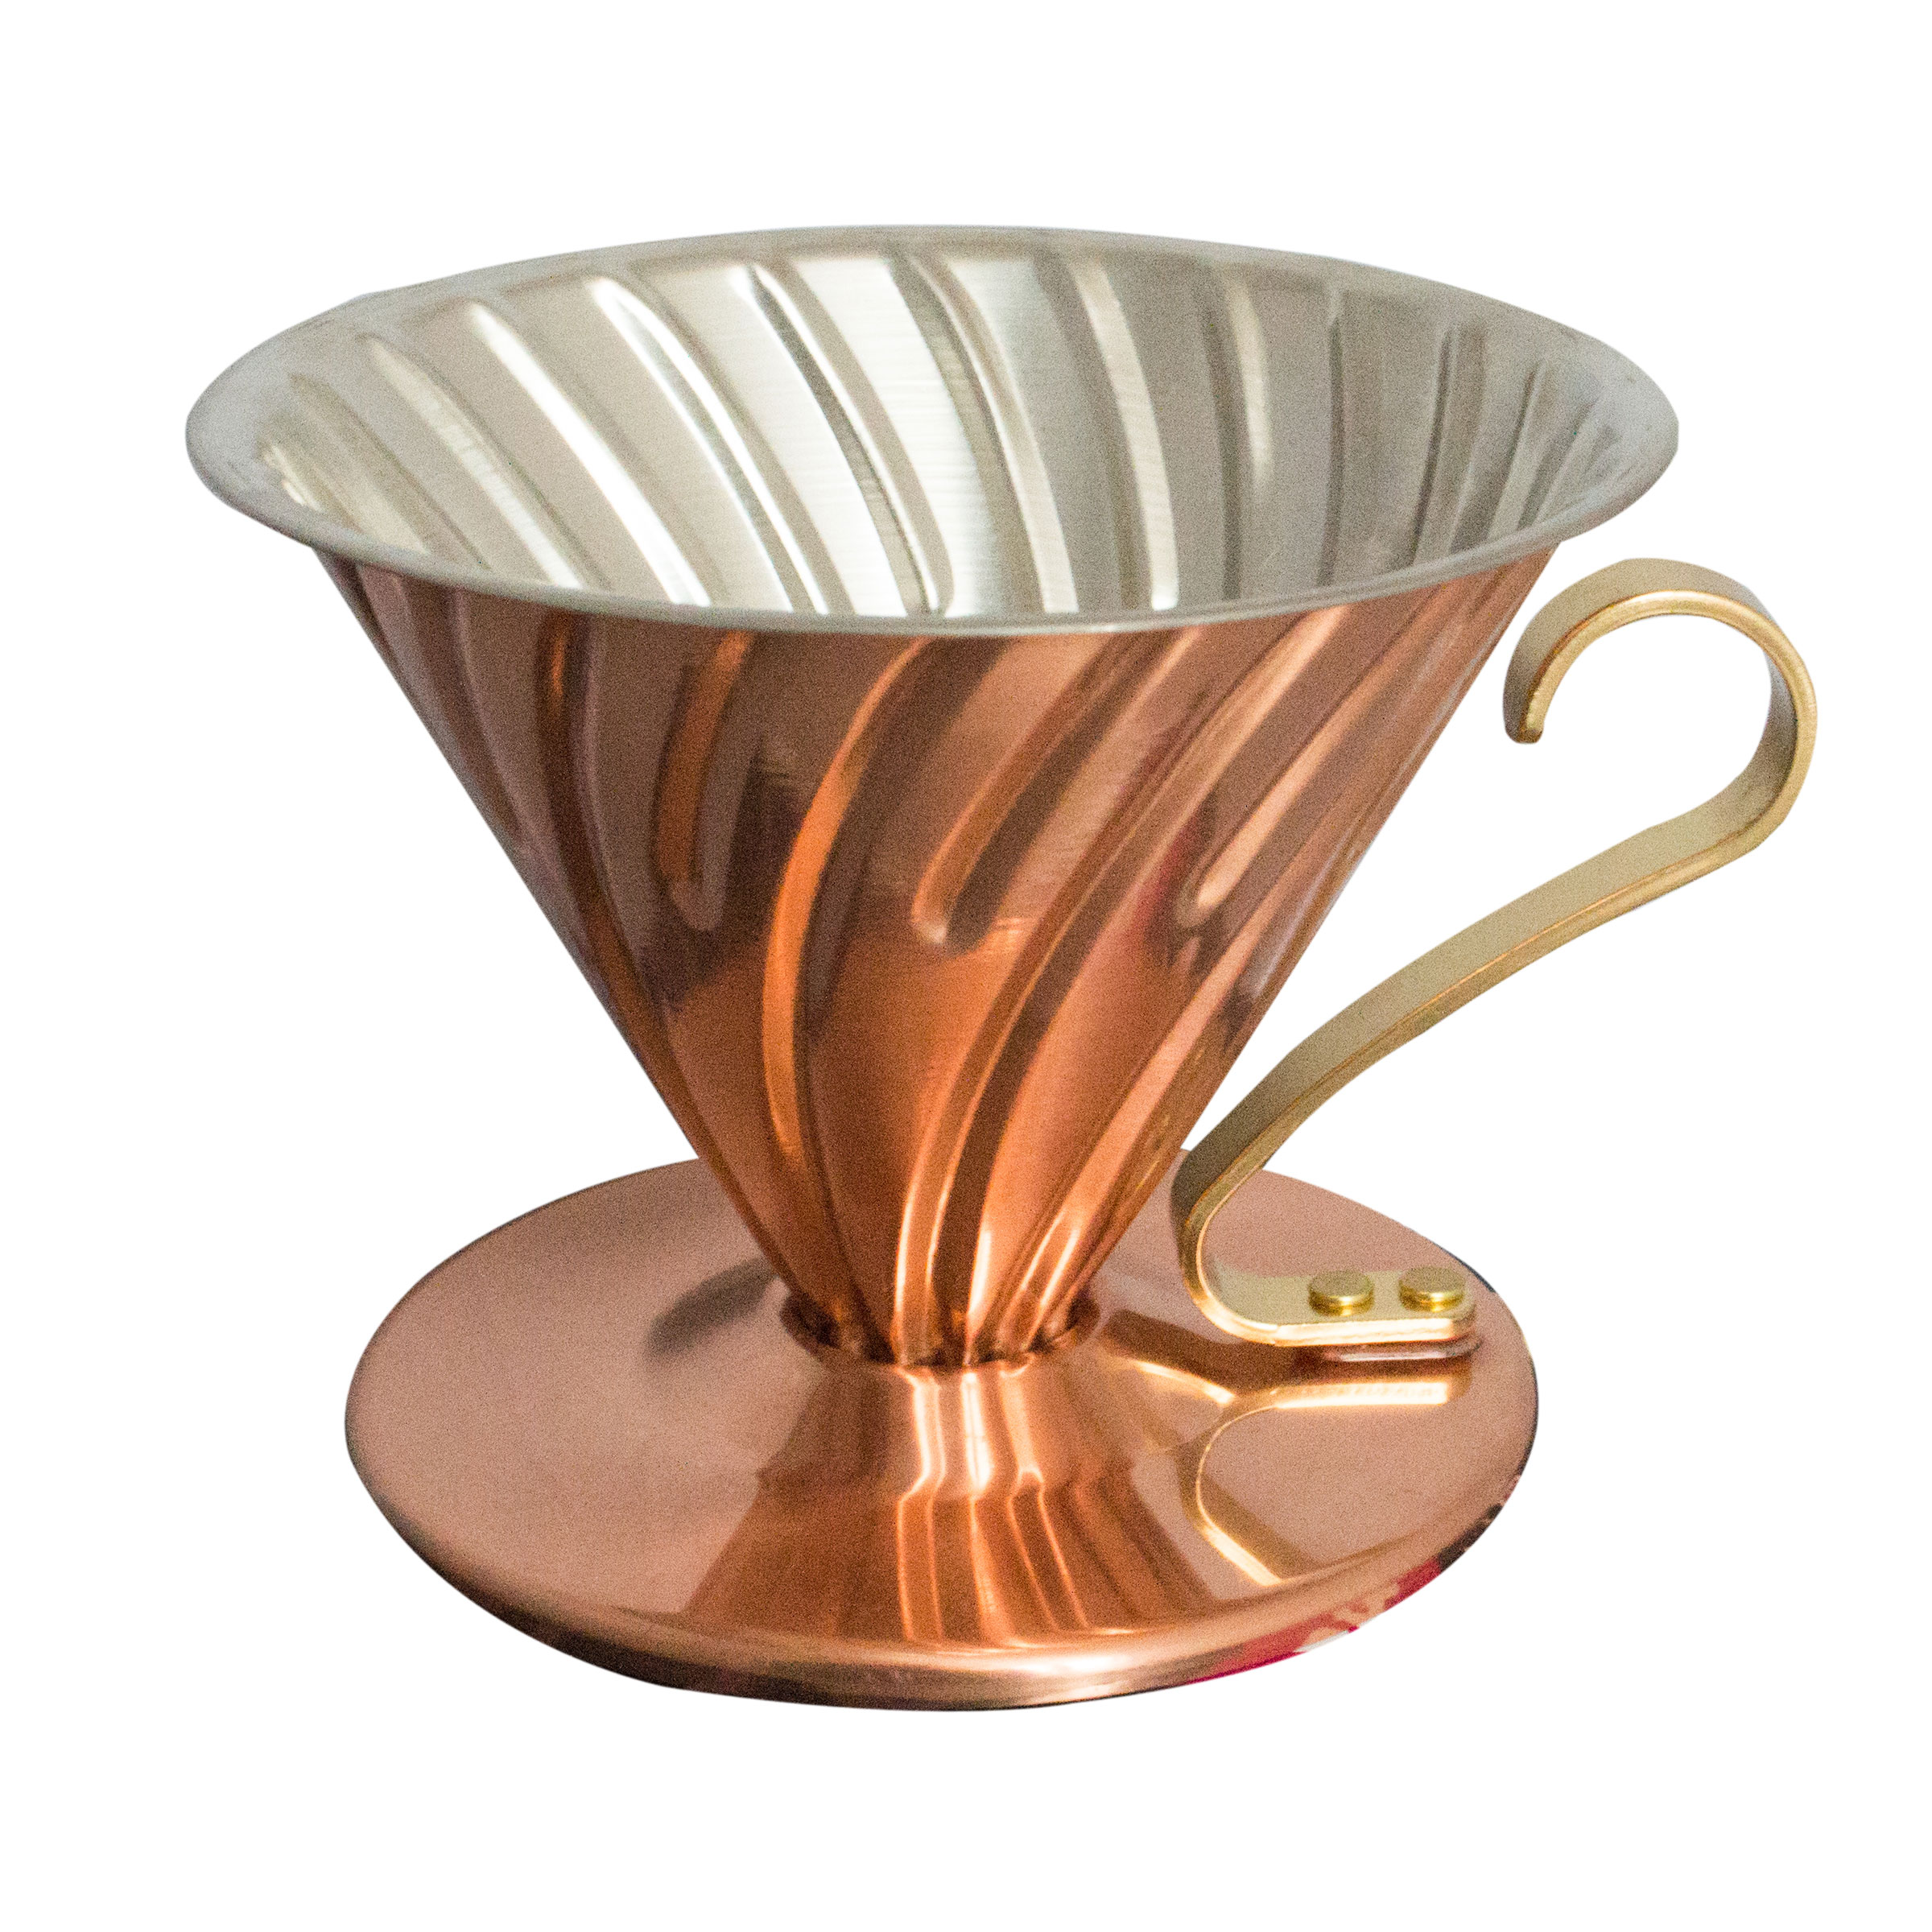 Picture Merchandise - Hario V60 Copper Dripper